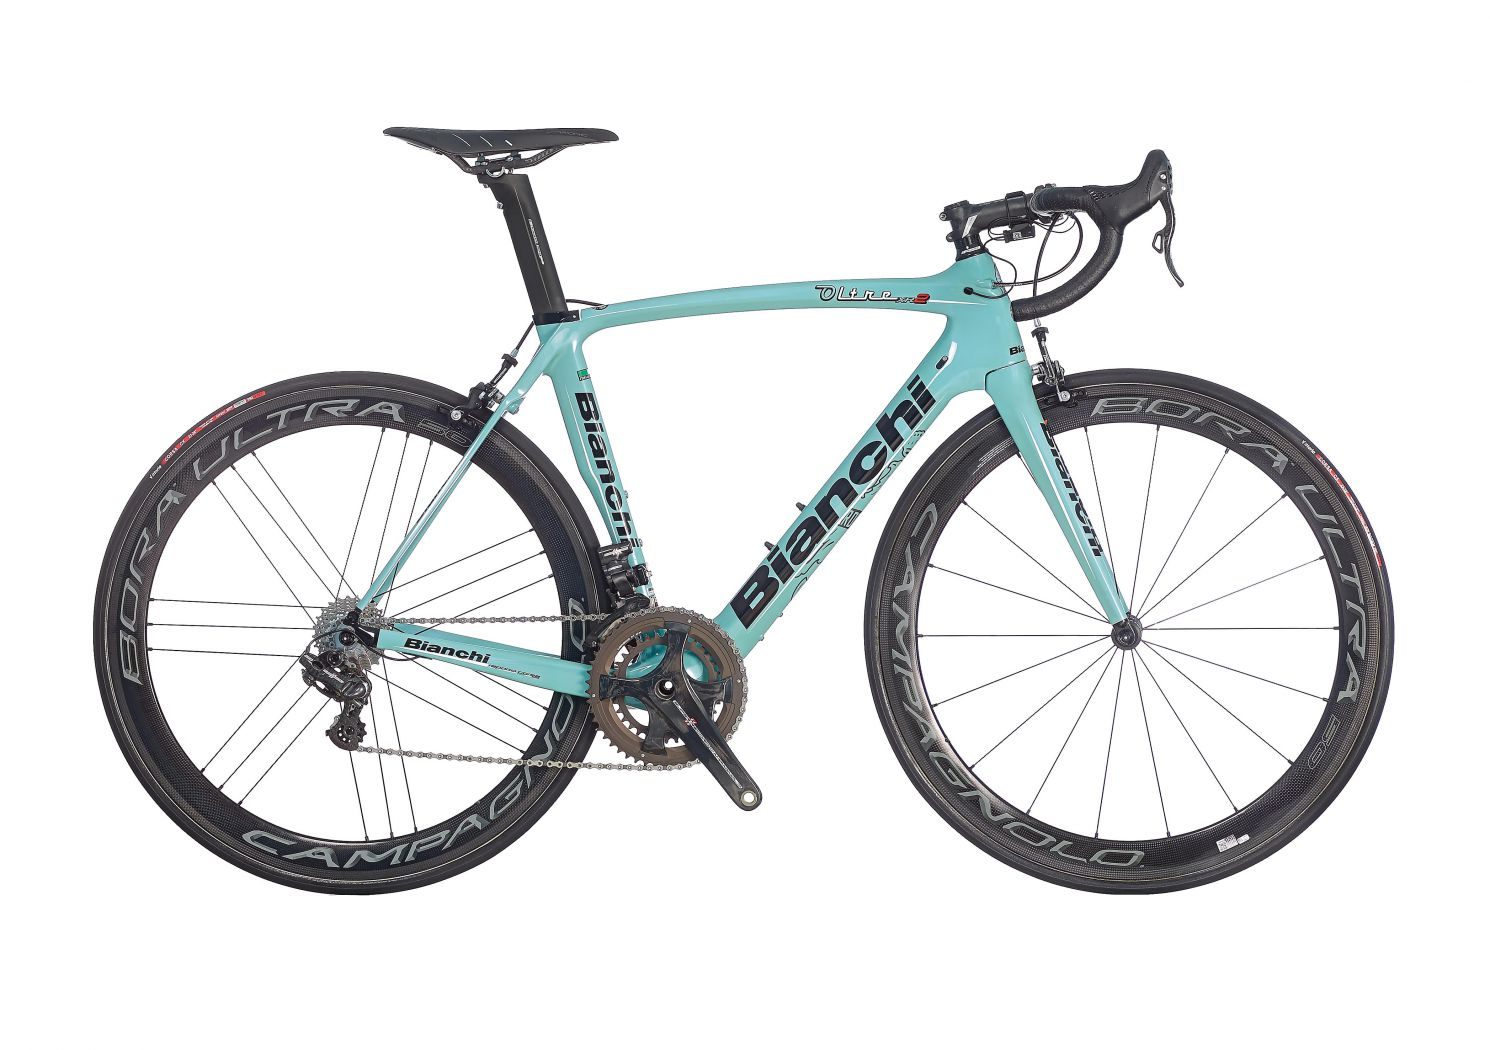 náhled Bianchi Oltre XR.2 Dura-Ace Di2 2016